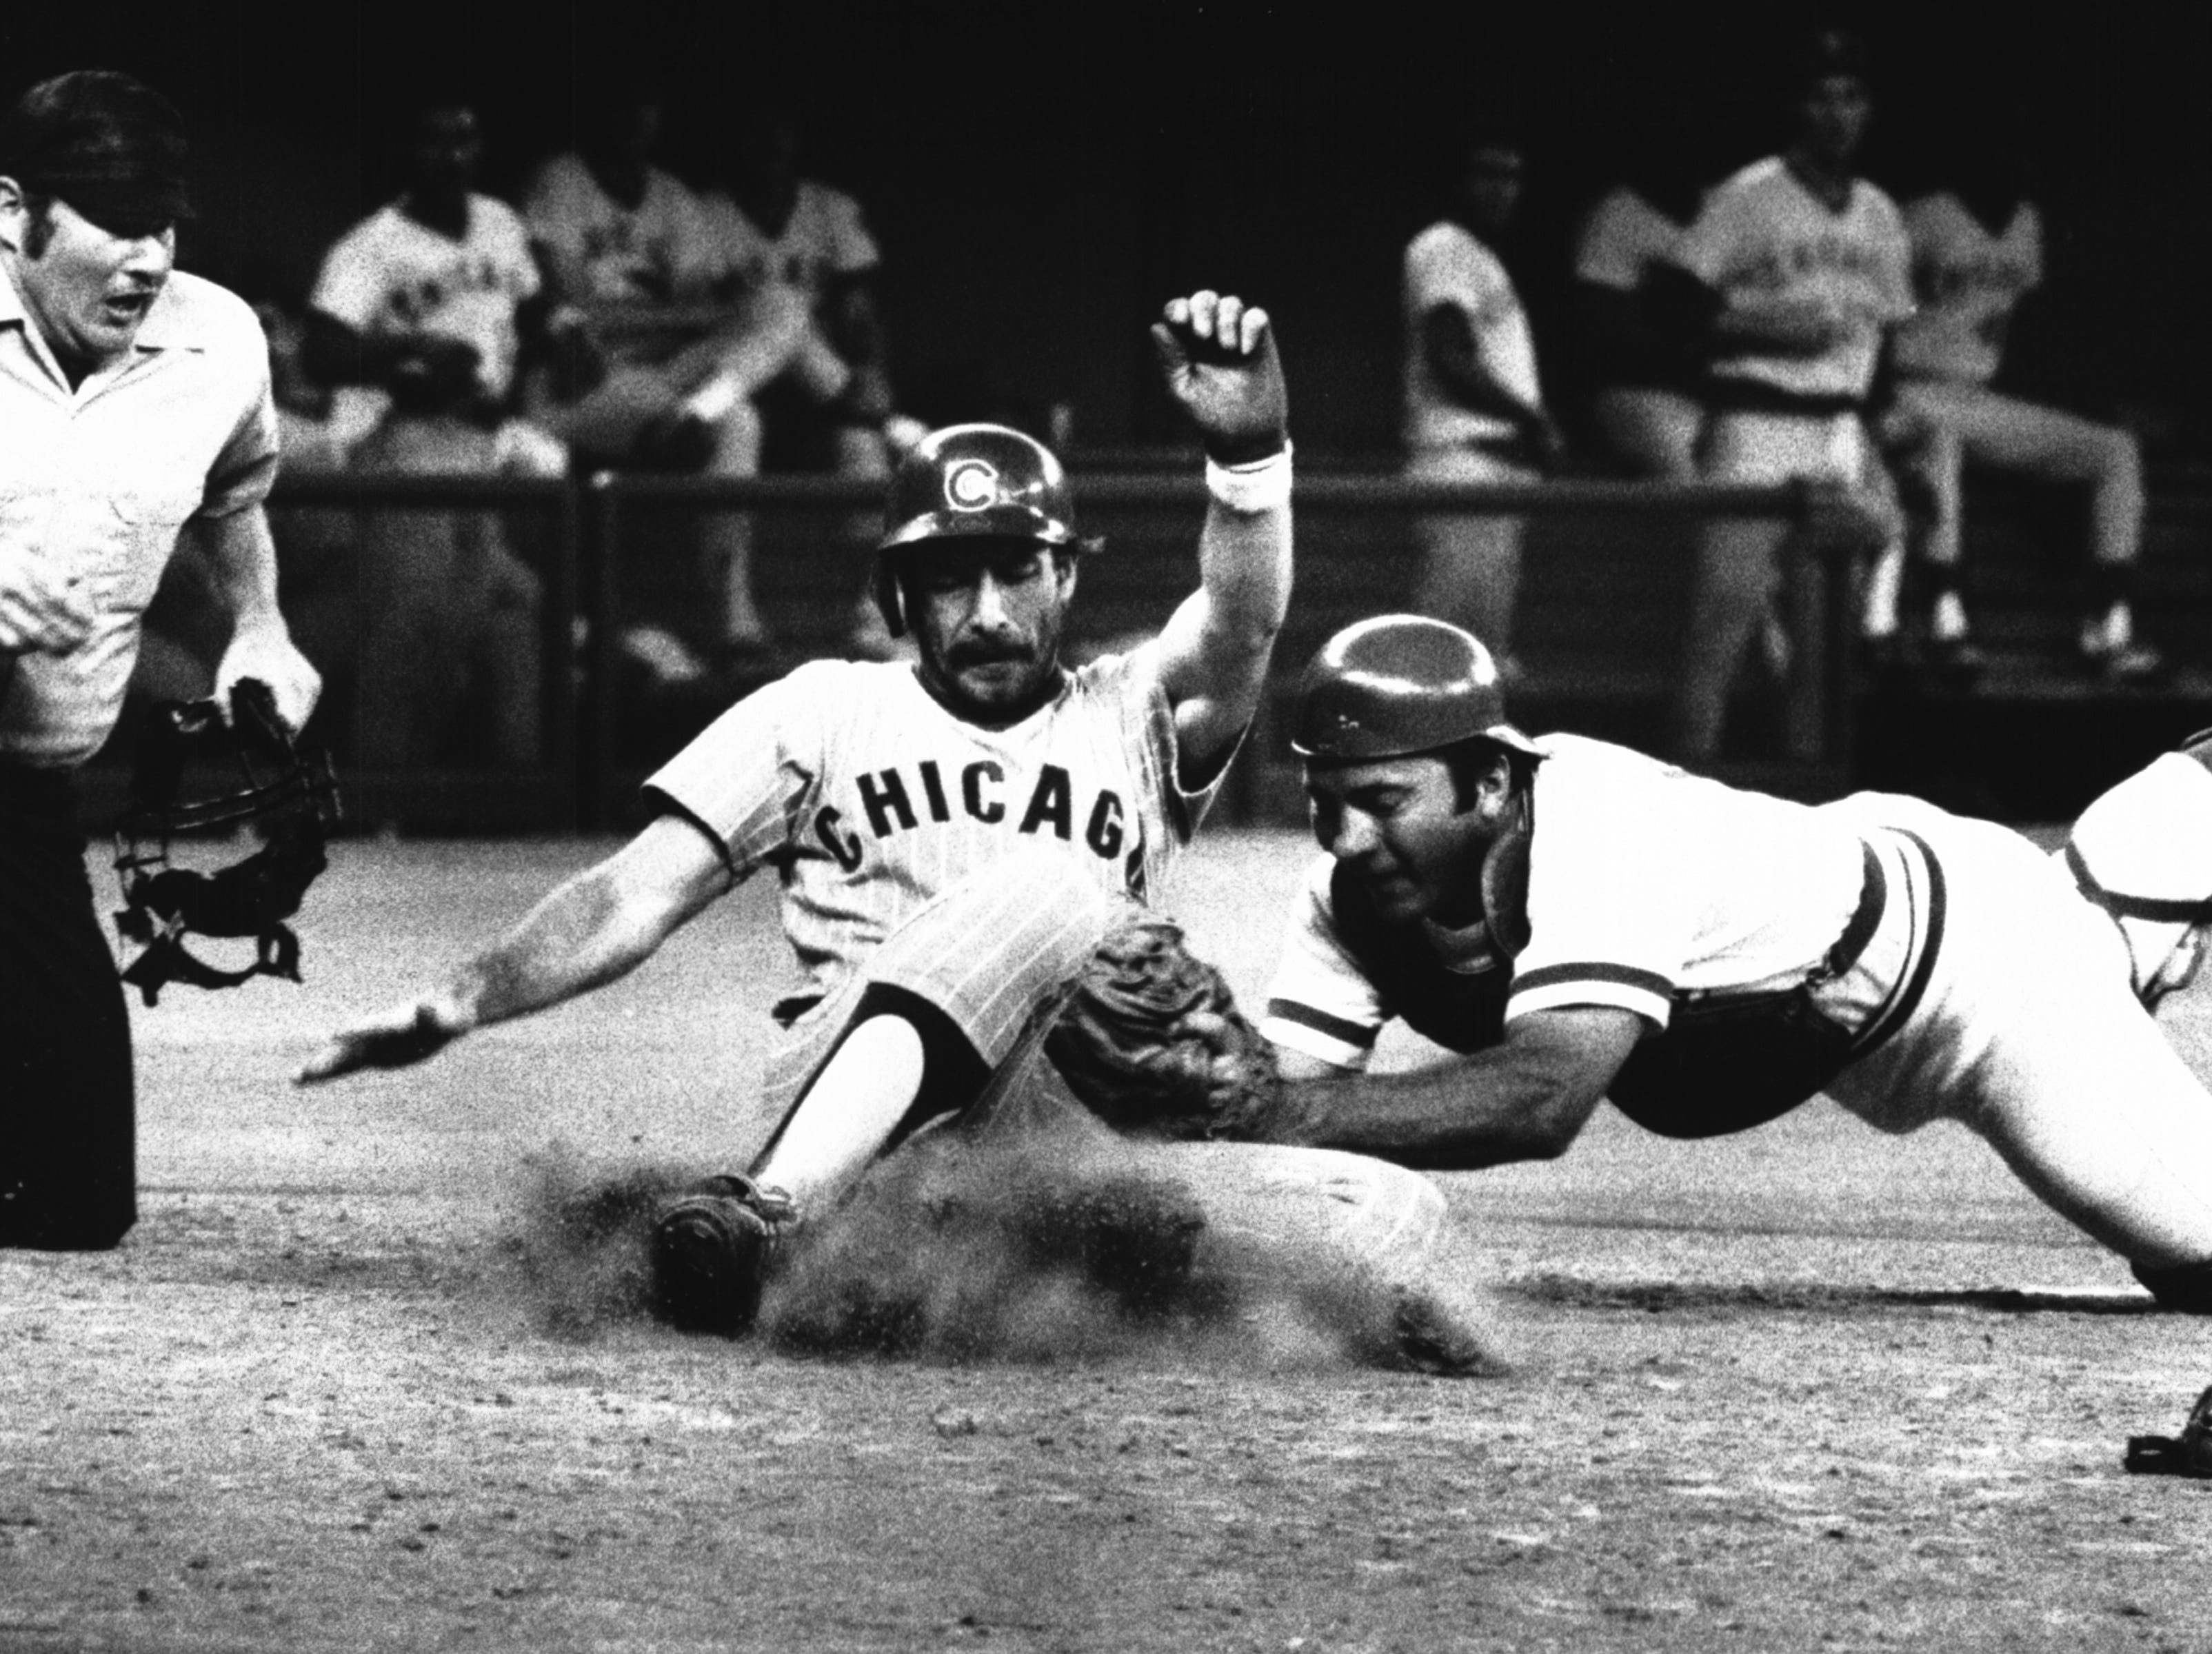 AUGUST 26, 1978: He's Out: Amateur umpire Les Treitel makes the ruling as Johnny Bench puts tag on Cubs' Tim Blackwell in fourth-inning play which saw Mike Lum's throw prevent a run. Regular umpires struck Friday afternoon. The Enquirer/Dick Swaim FROM A SATURDAY AUGUST 26, 1978 REFER: Cubs' Reuschel Hangs Loss On Reds; Page B-1.